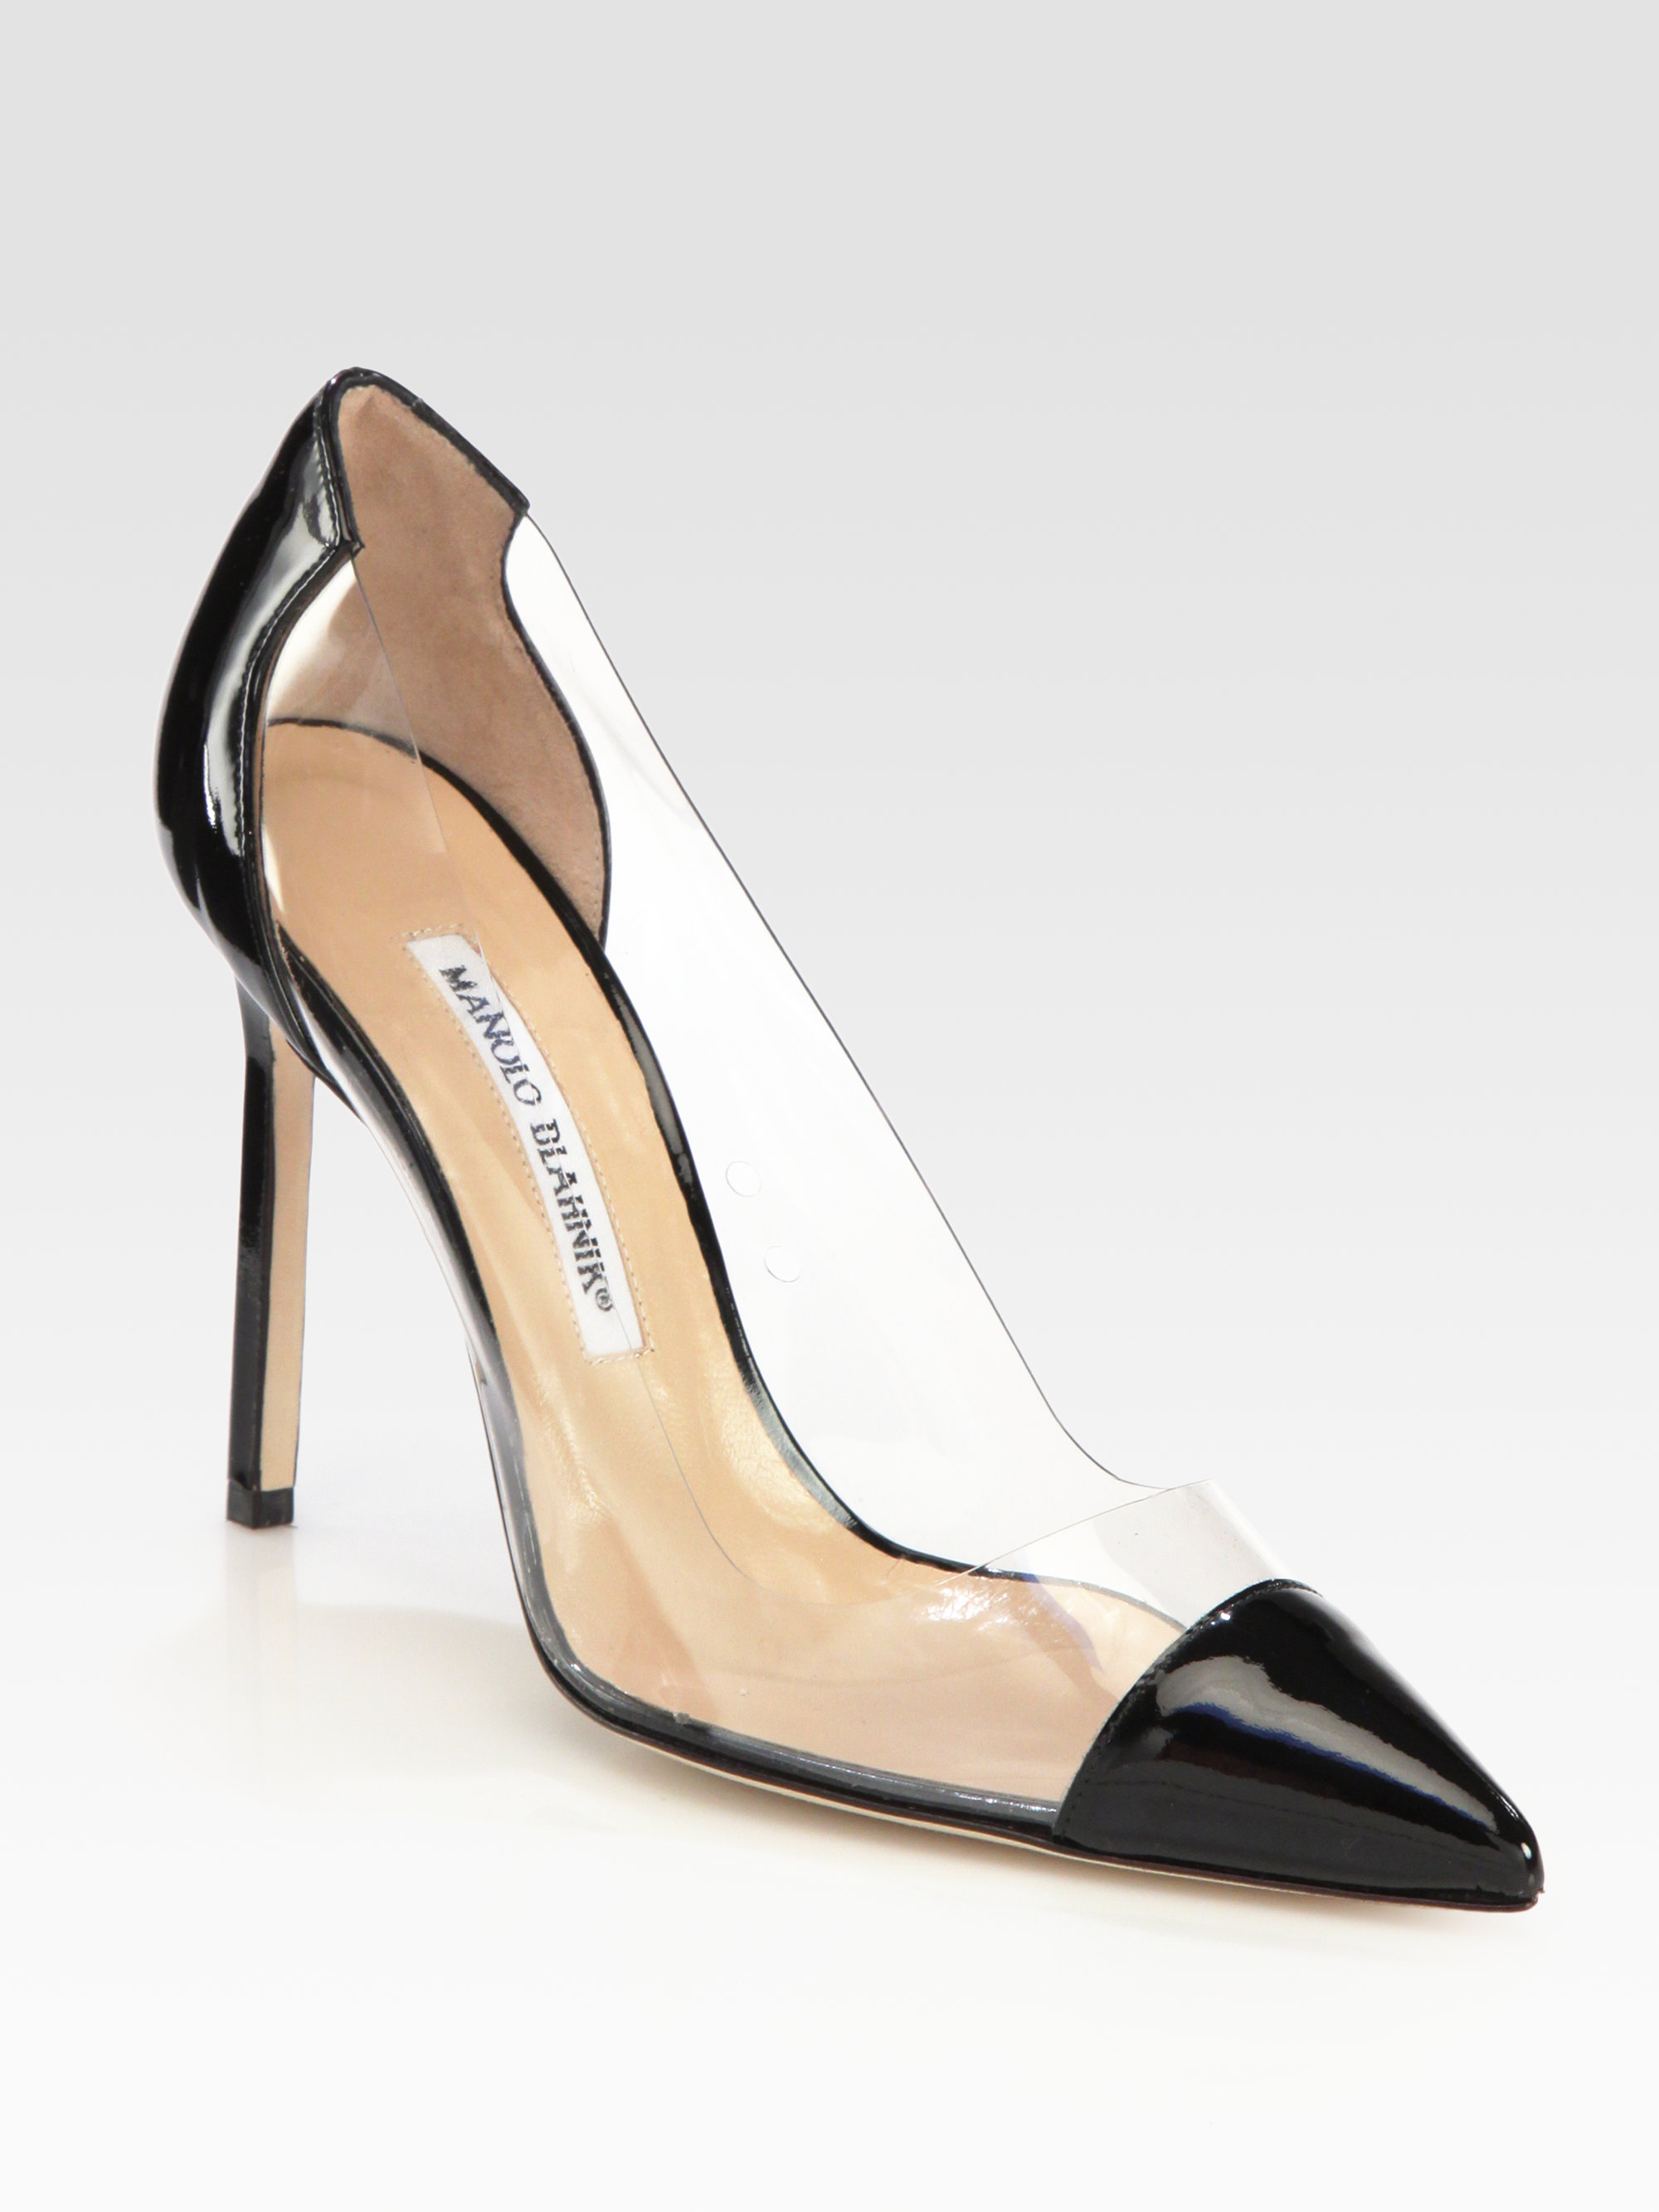 Manolo blahnik pacha translucent captoe pumps in black lyst for Who is manolo blahnik